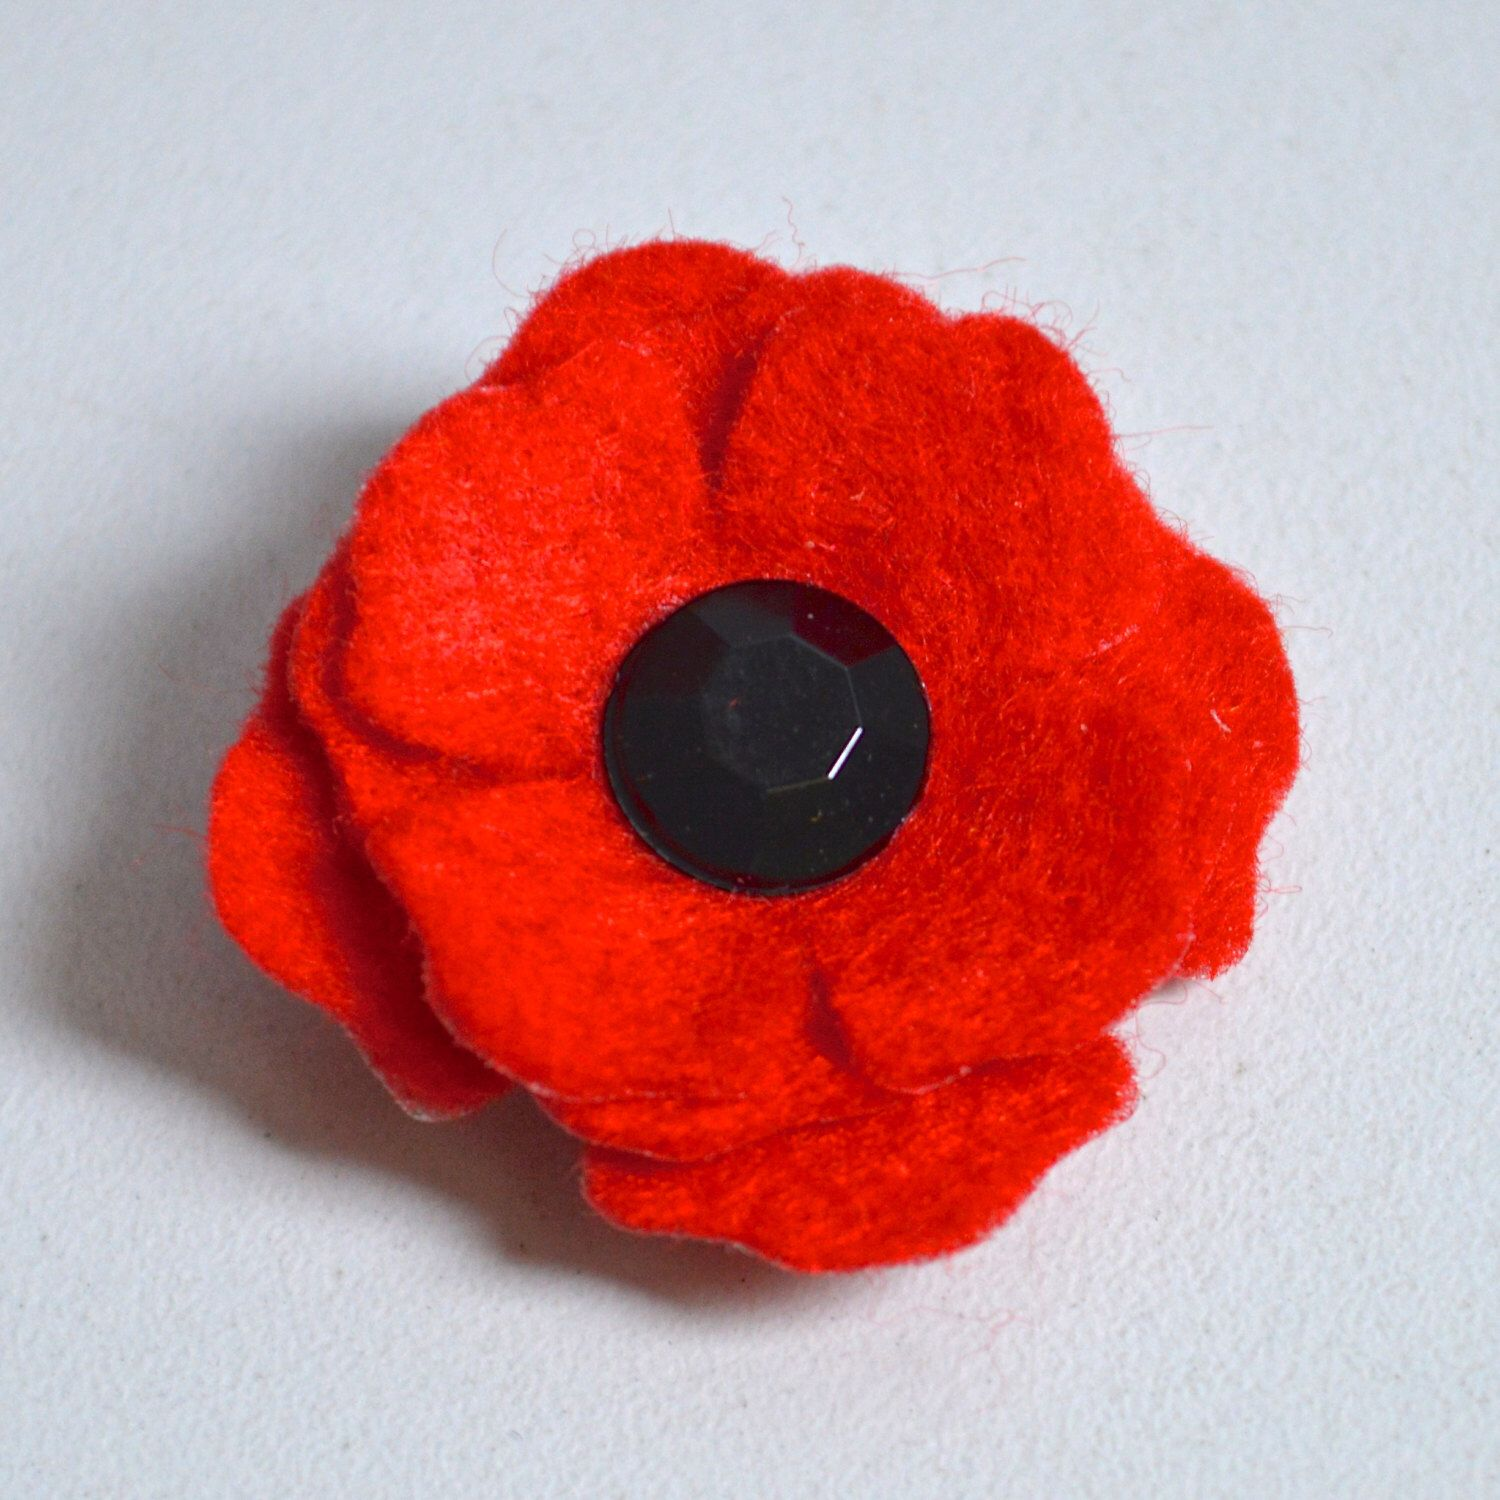 small red poppy lapel pin brooch with glass button centre